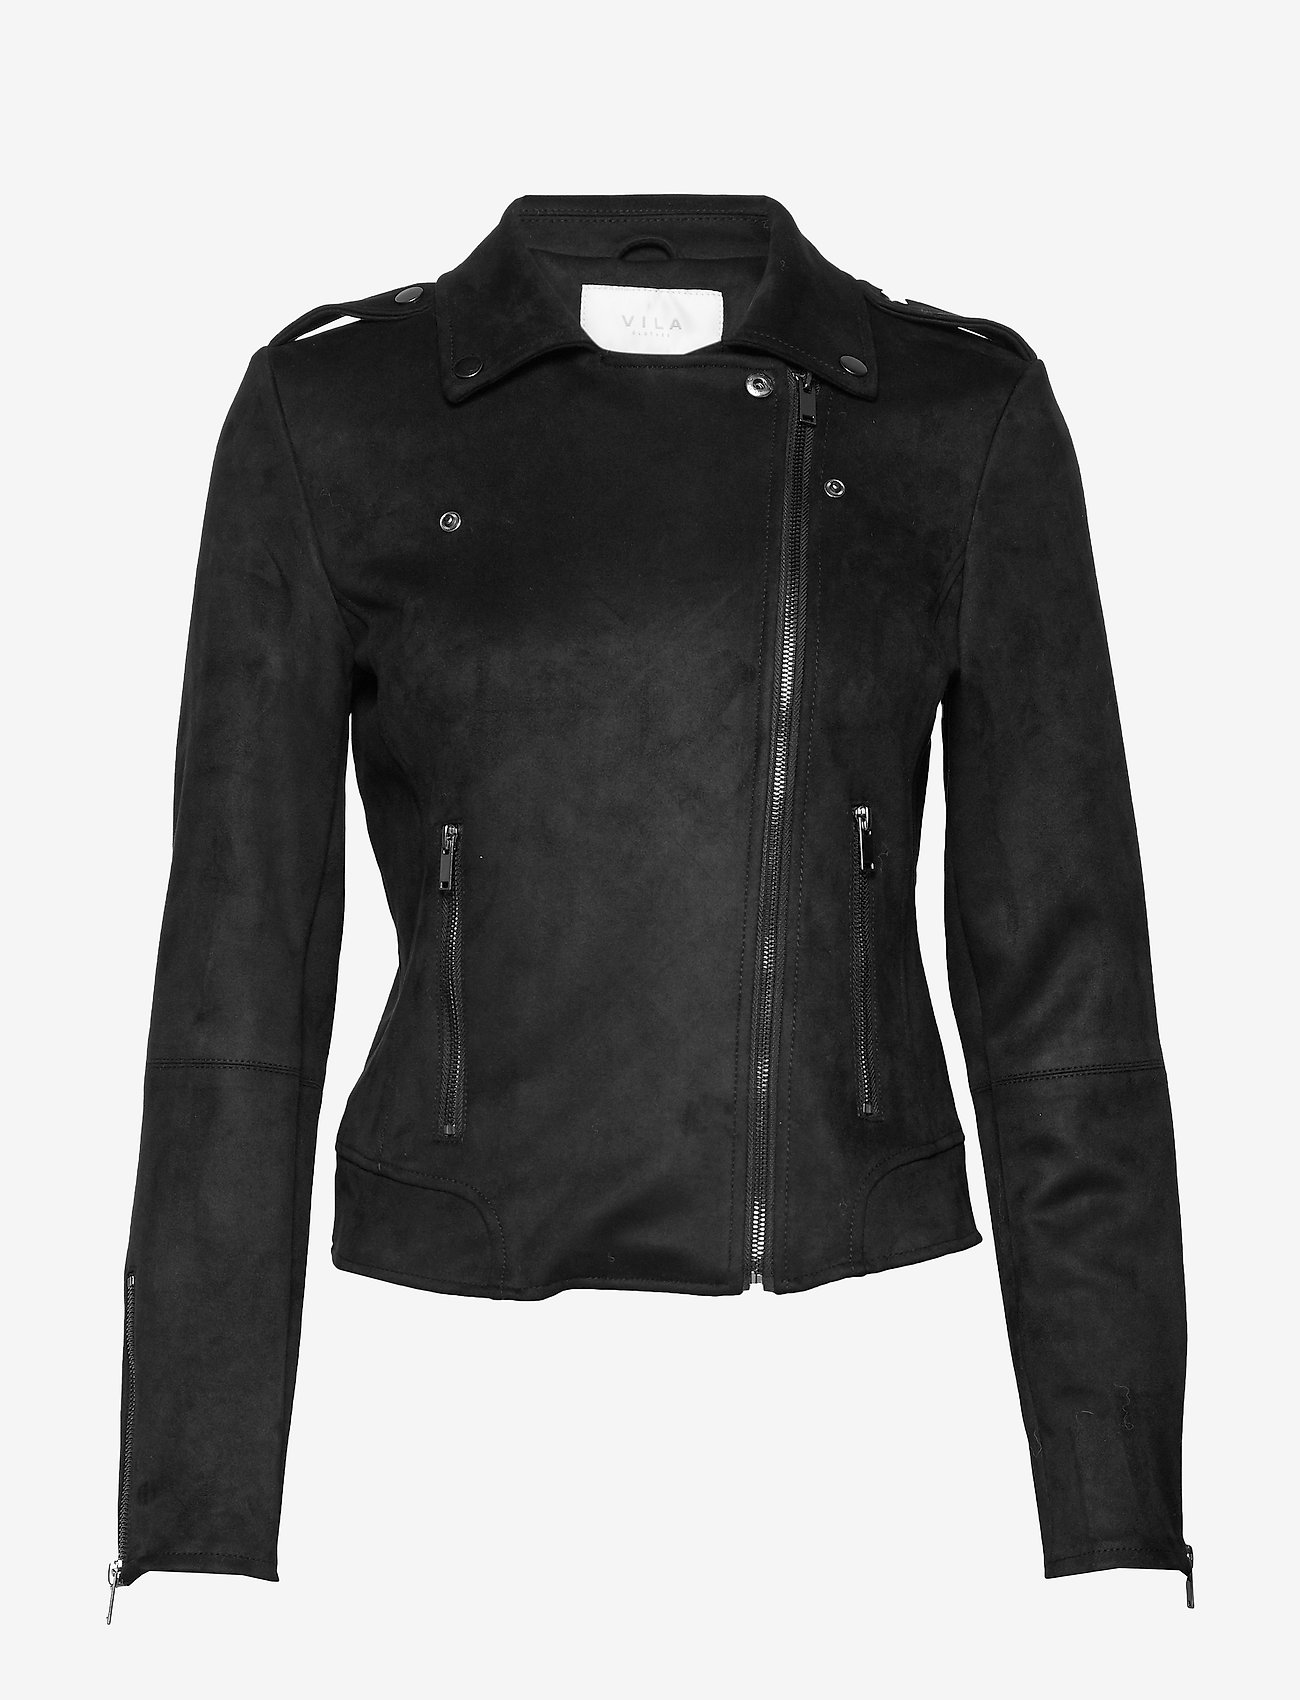 Vila - VIFADDY JACKET - NOOS - leather jackets - black - 1